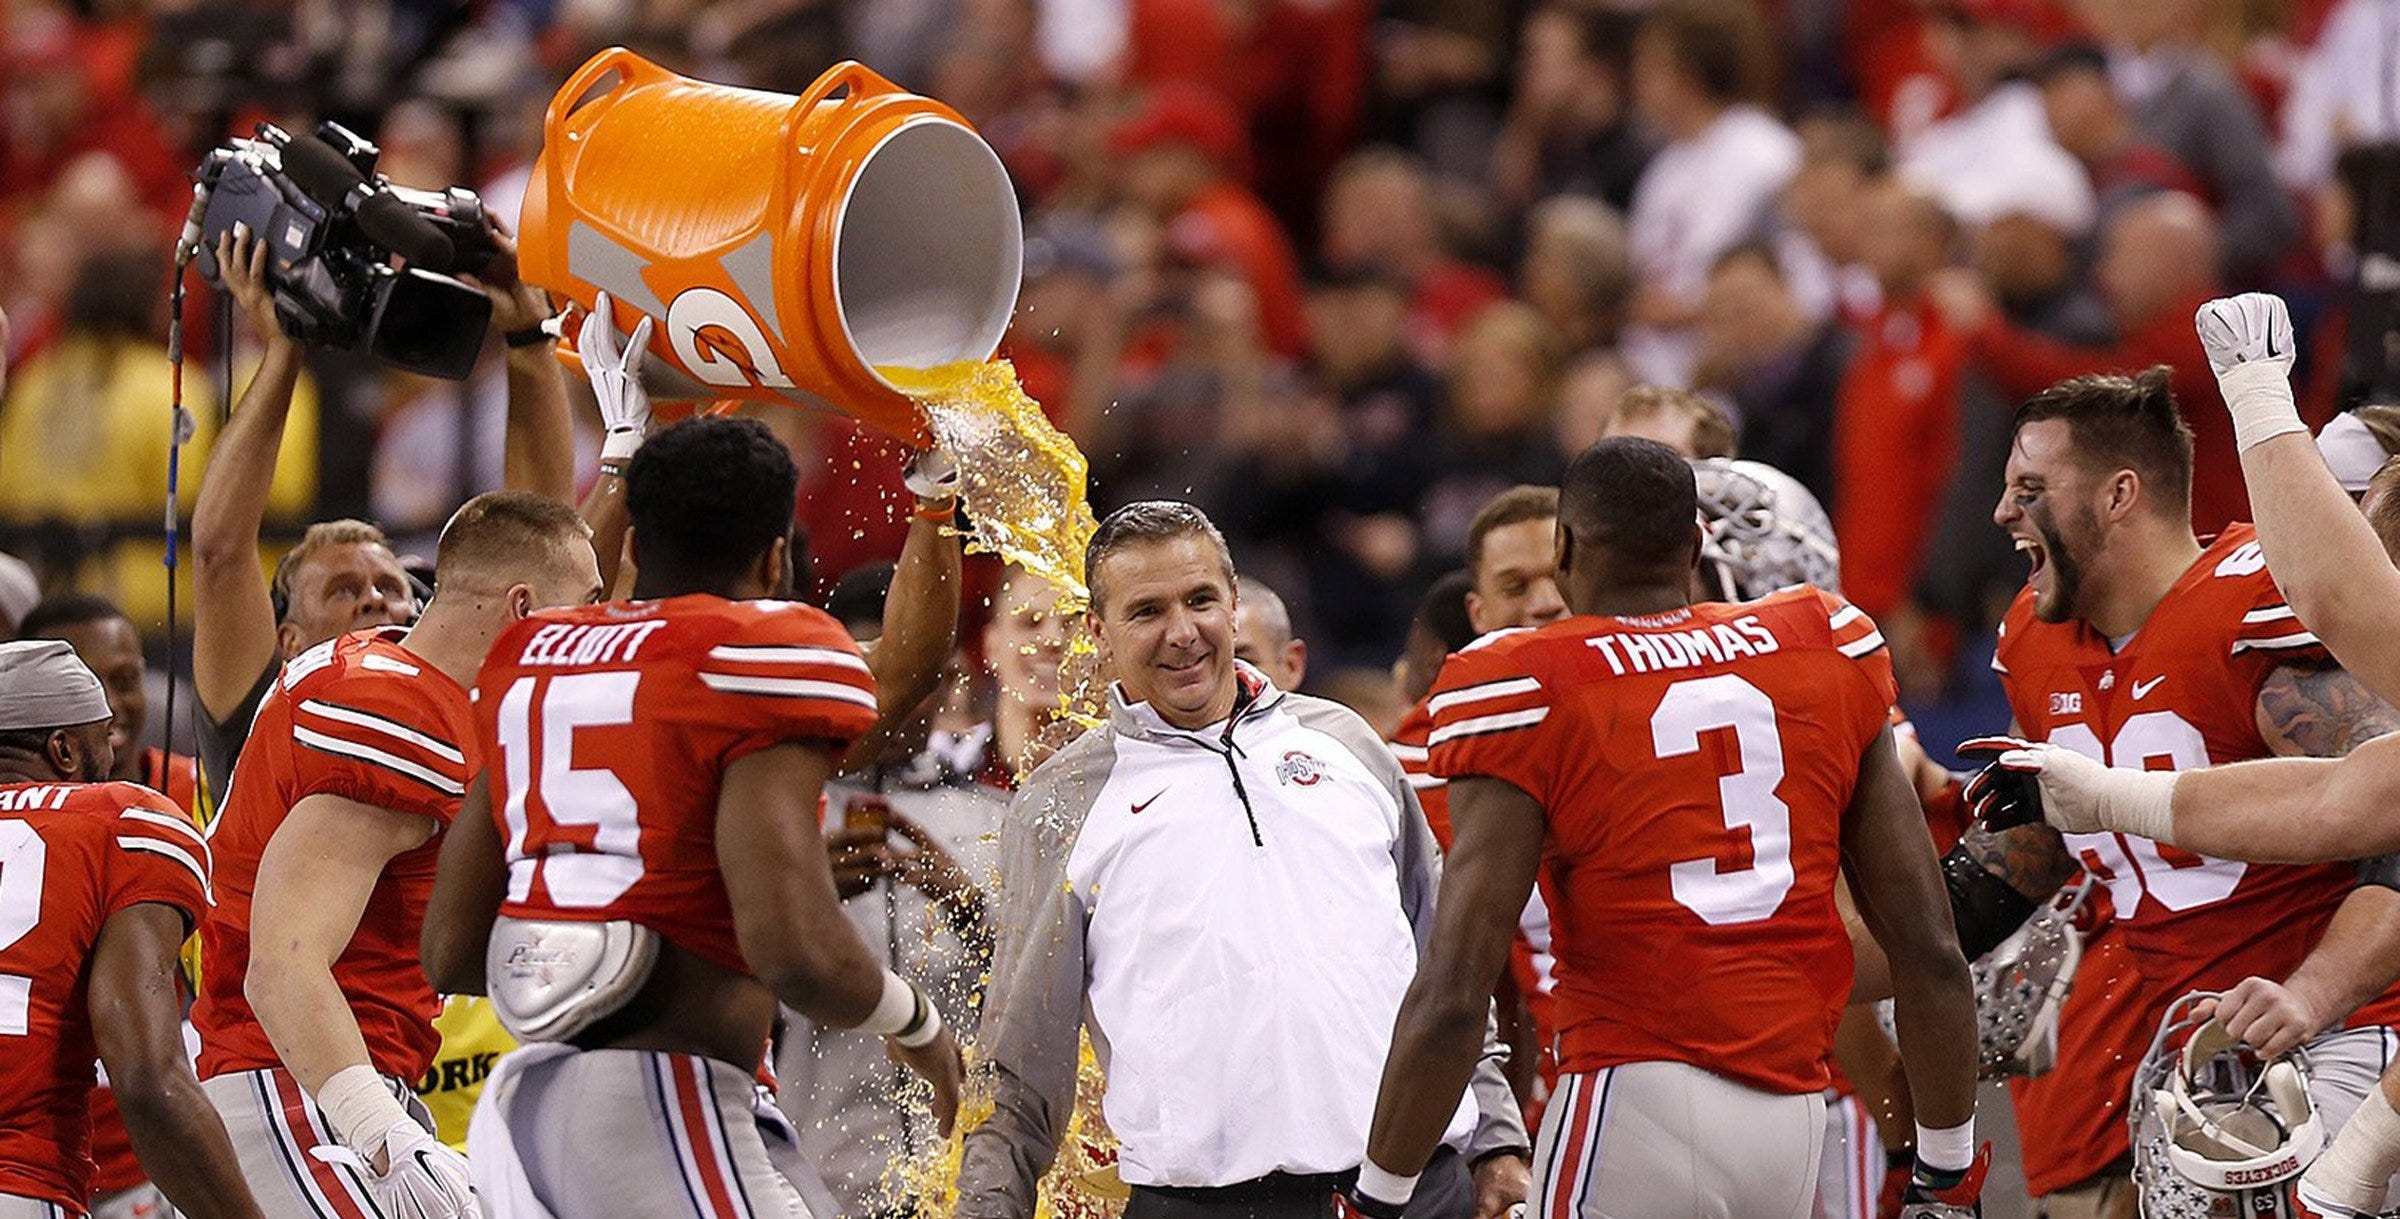 Ohio State coach Urban Meyer was the target of three postgame Gatorade baths in the 2014 postseason, when his team won three games as underdogs to win the first College Football Playoff national championship.